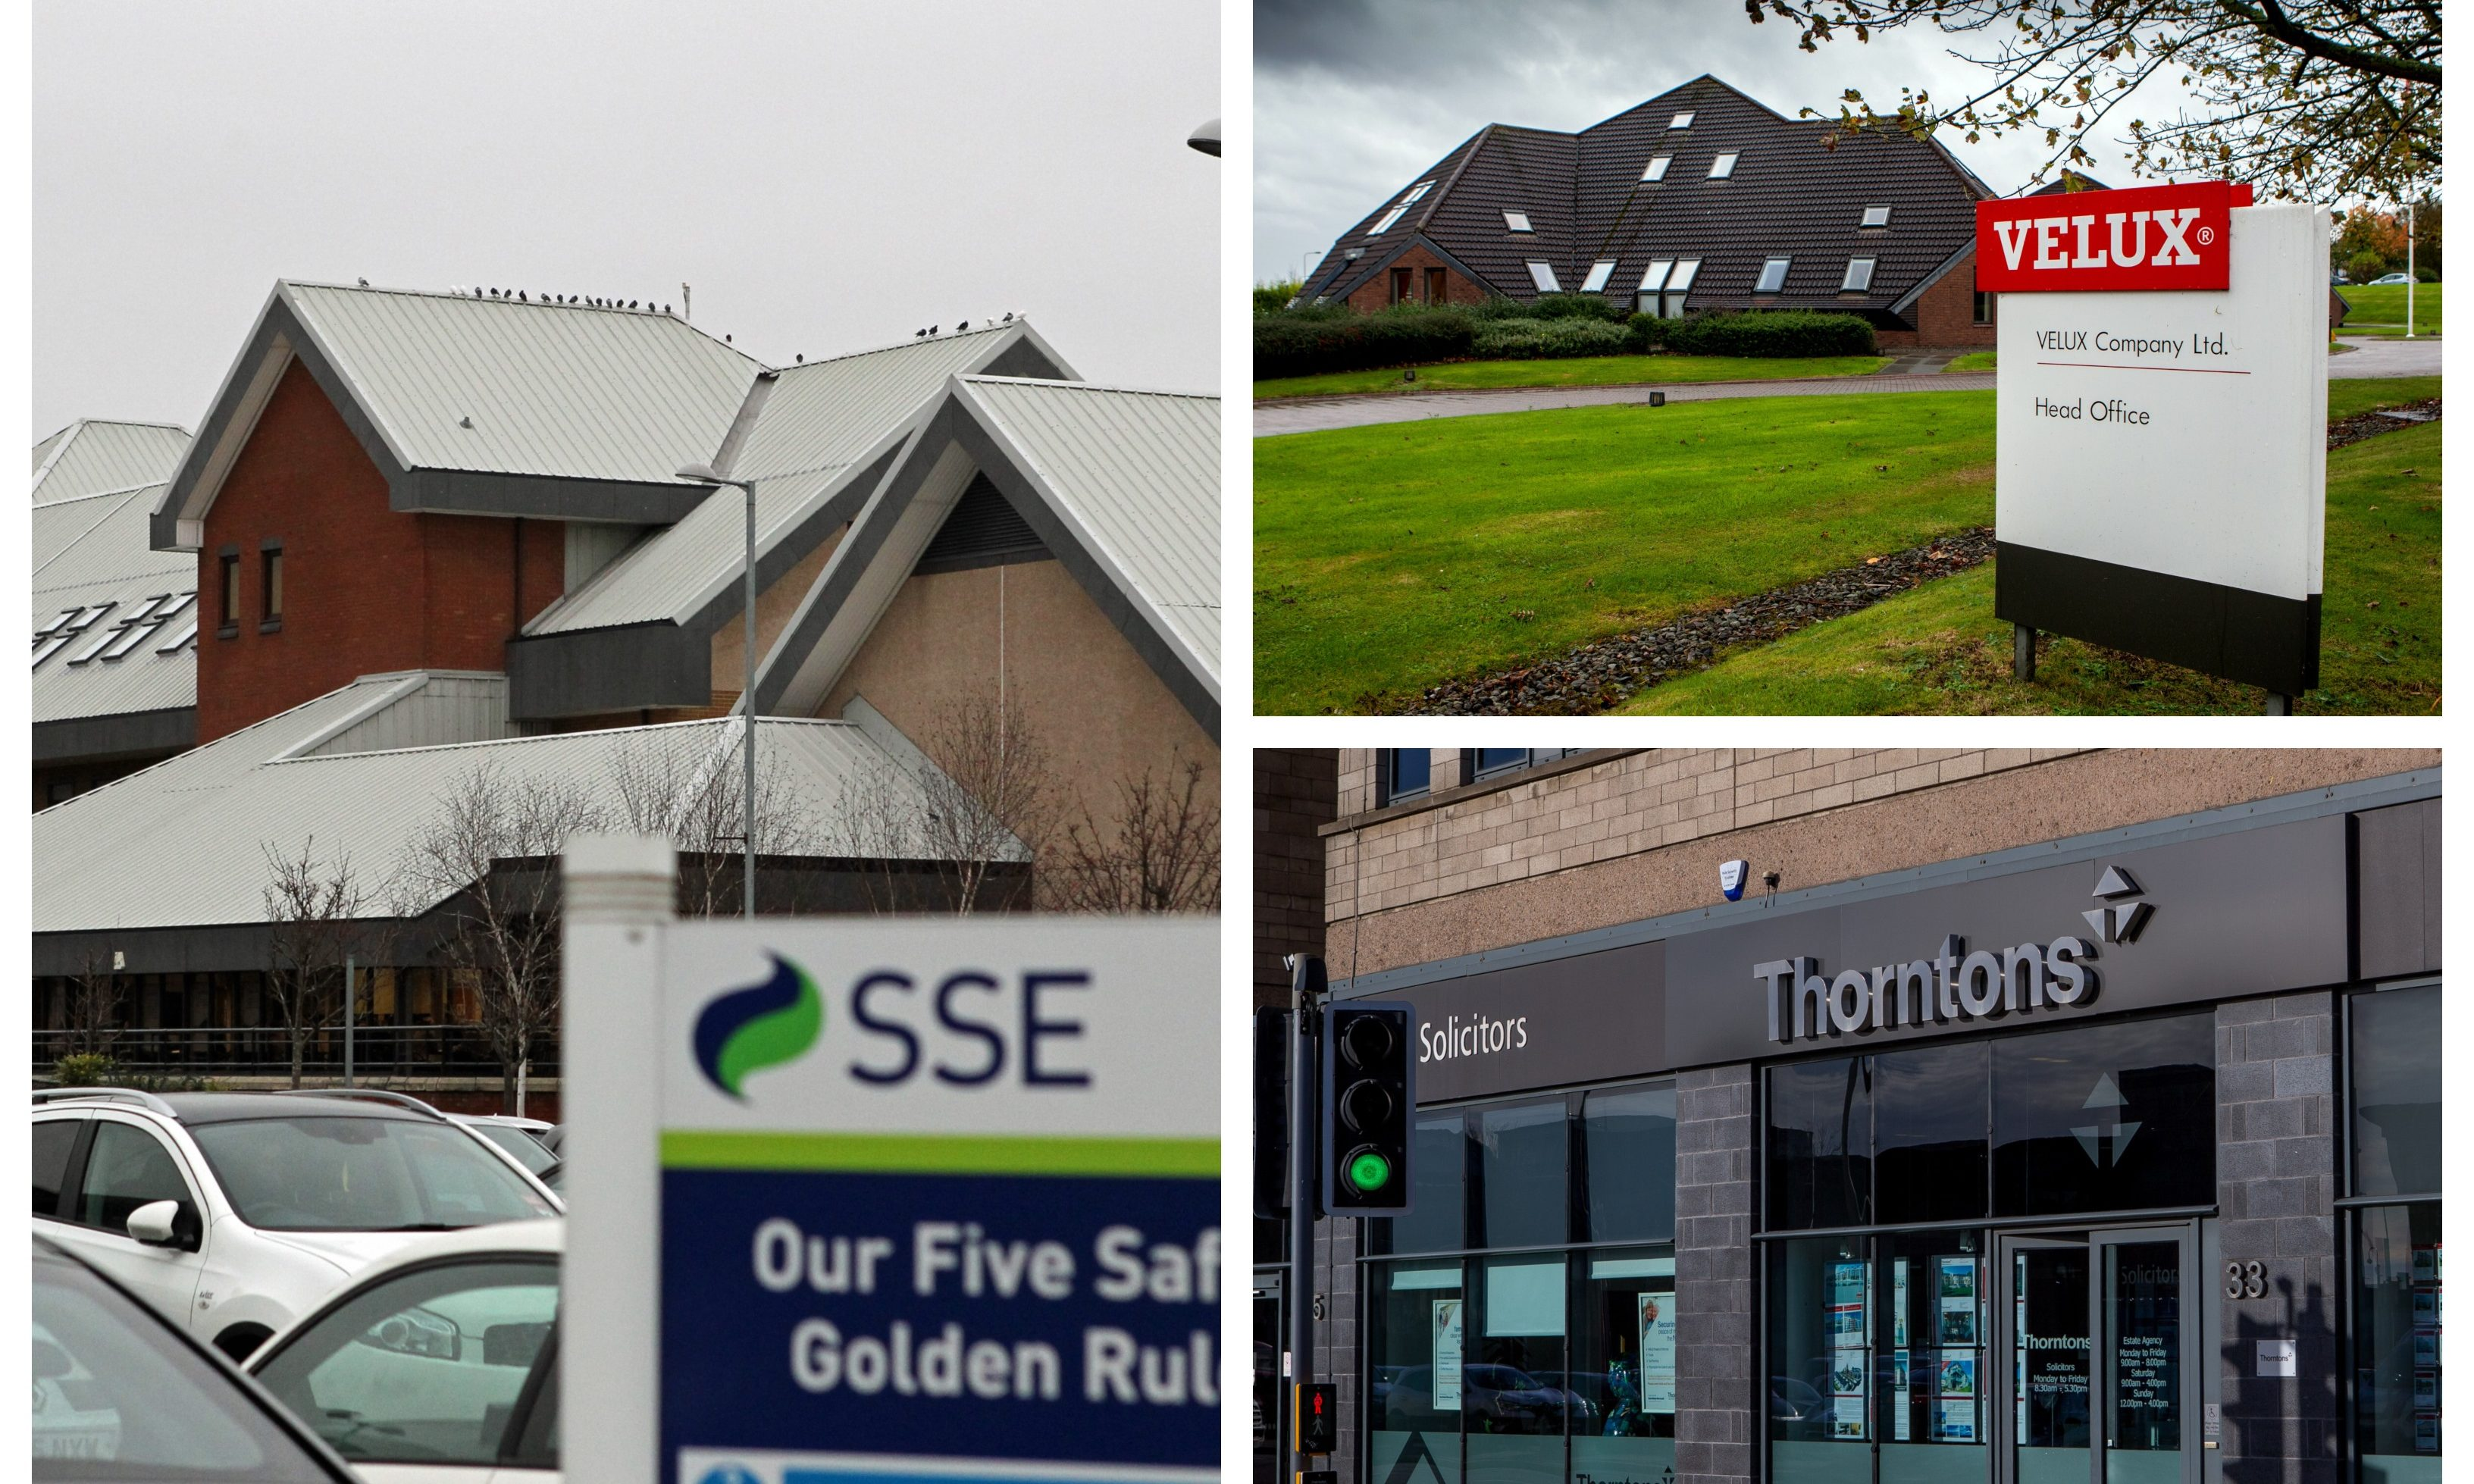 SSE, Velux and Thorntons.